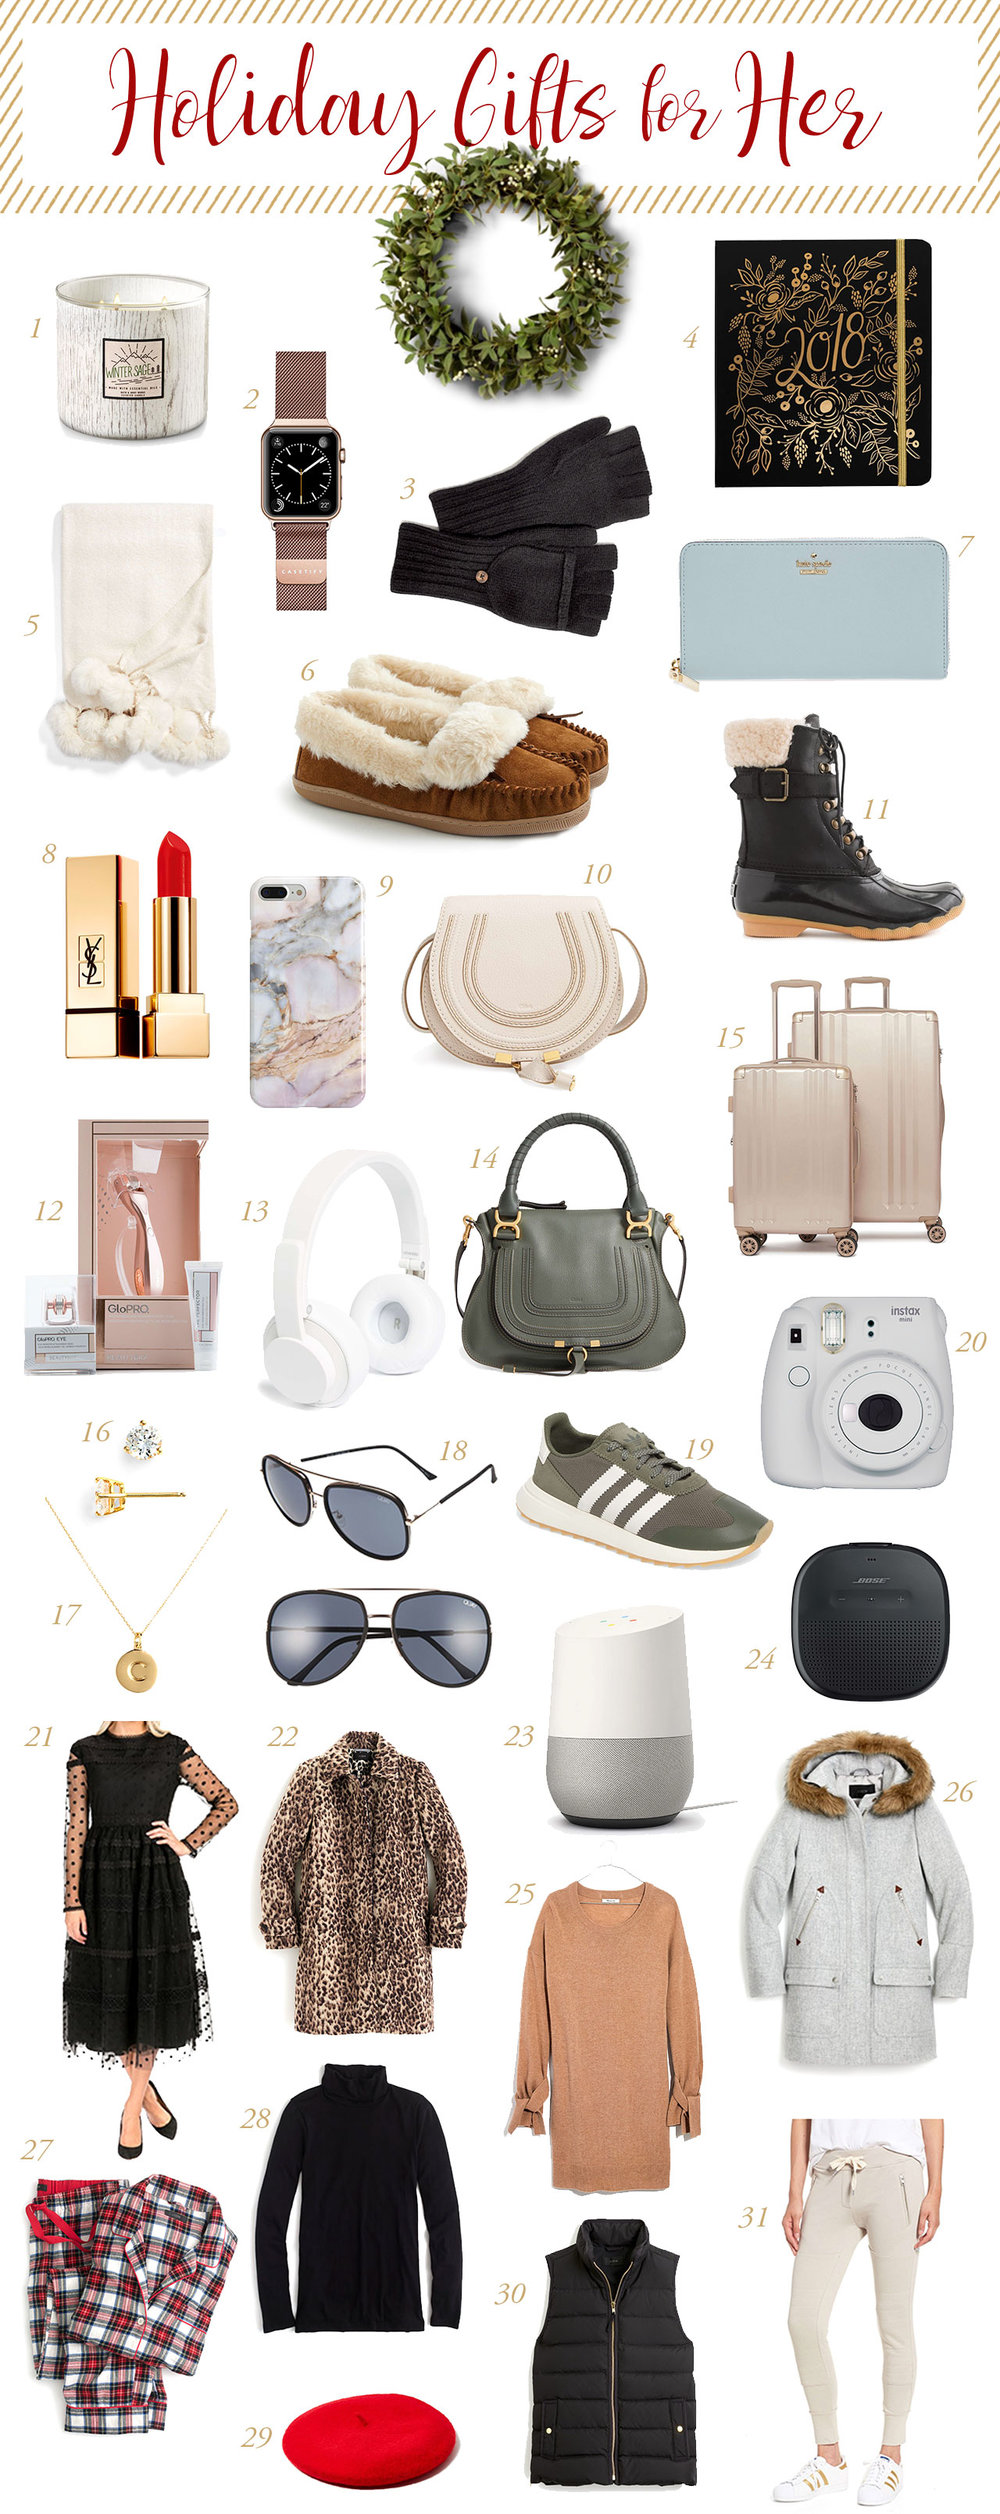 Holiday-Gift-Guide-for-Her.jpg